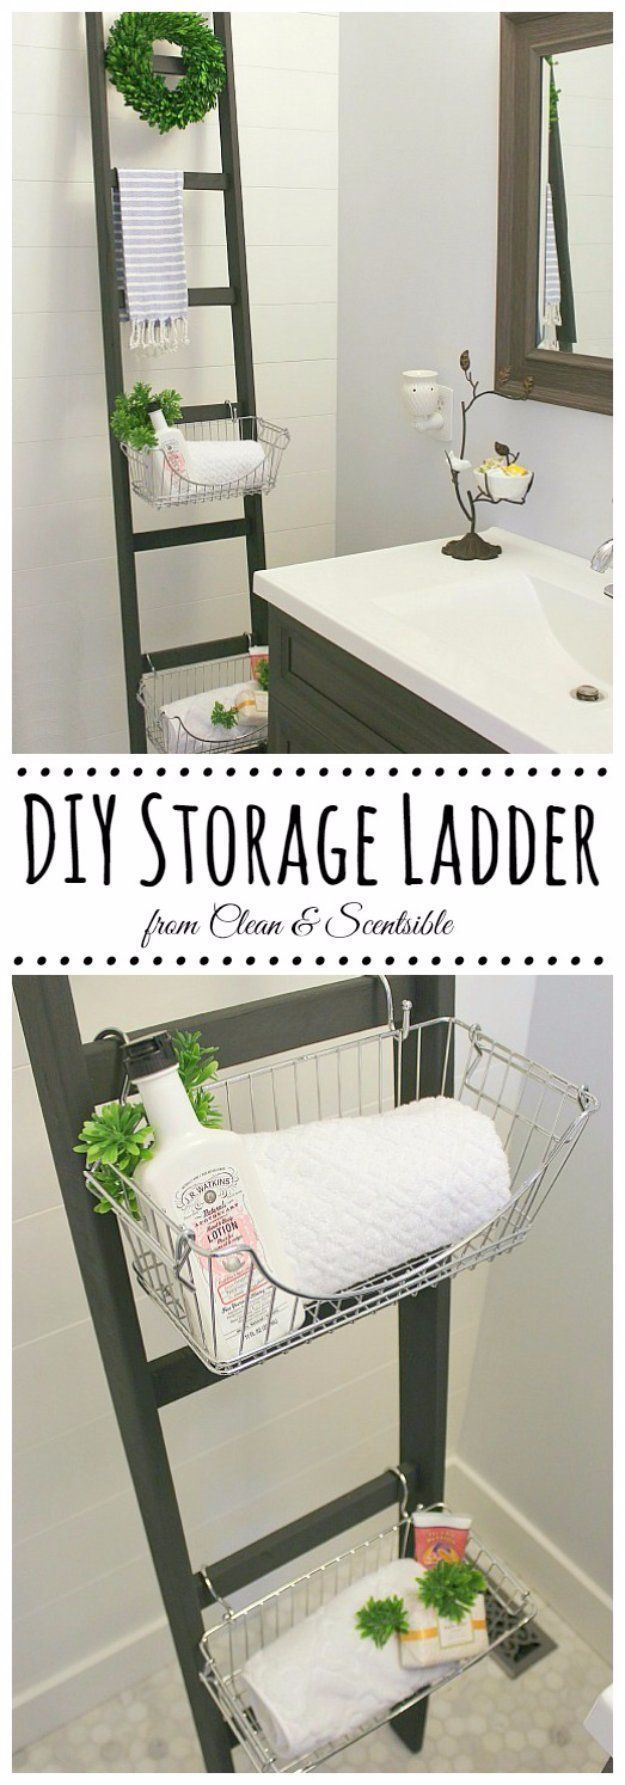 DIY Badezimmer Dekor Ideen - DIY Bad Speicherleiter - Cool Do It Yourself  #bade...